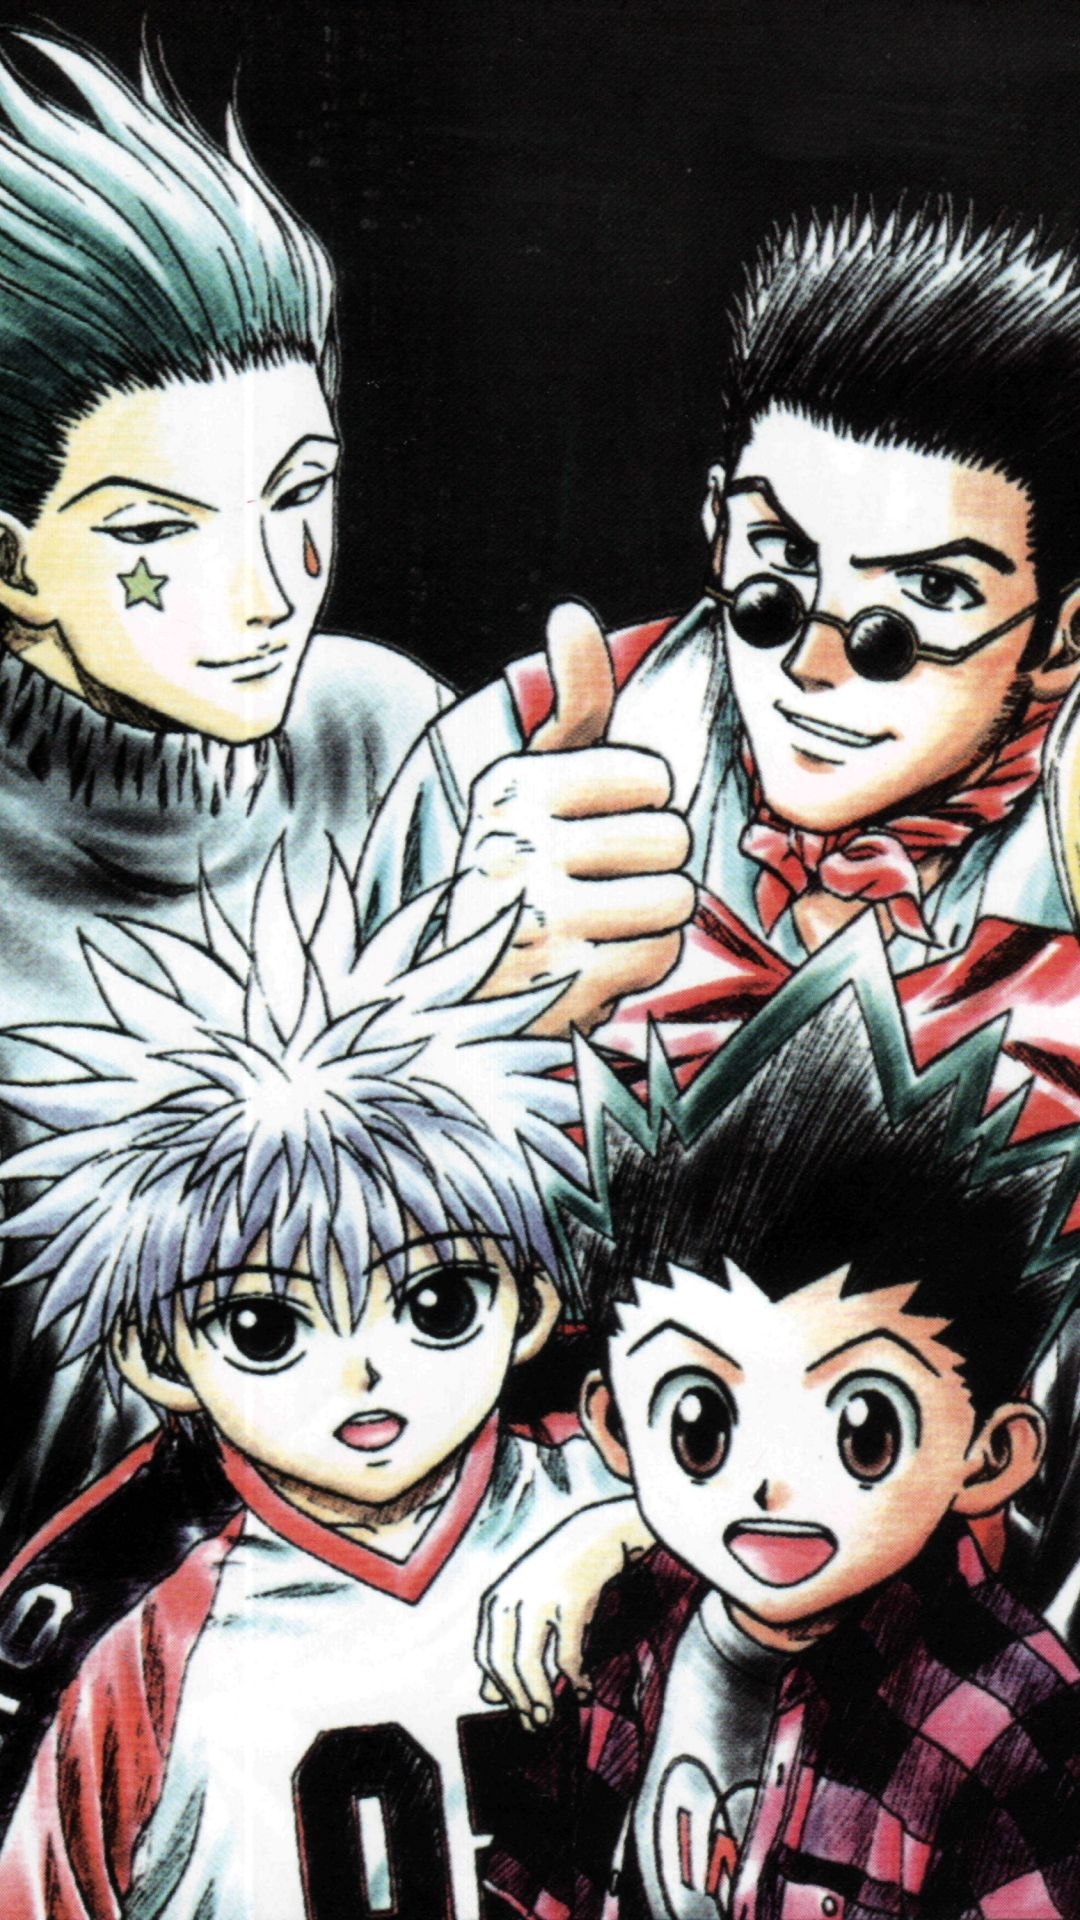 33 hunter x hunter high quality wallpapers for your pc mobile phone ipad iphone. Hunter X Hunter iPhone Wallpapers - Top Free Hunter X ...